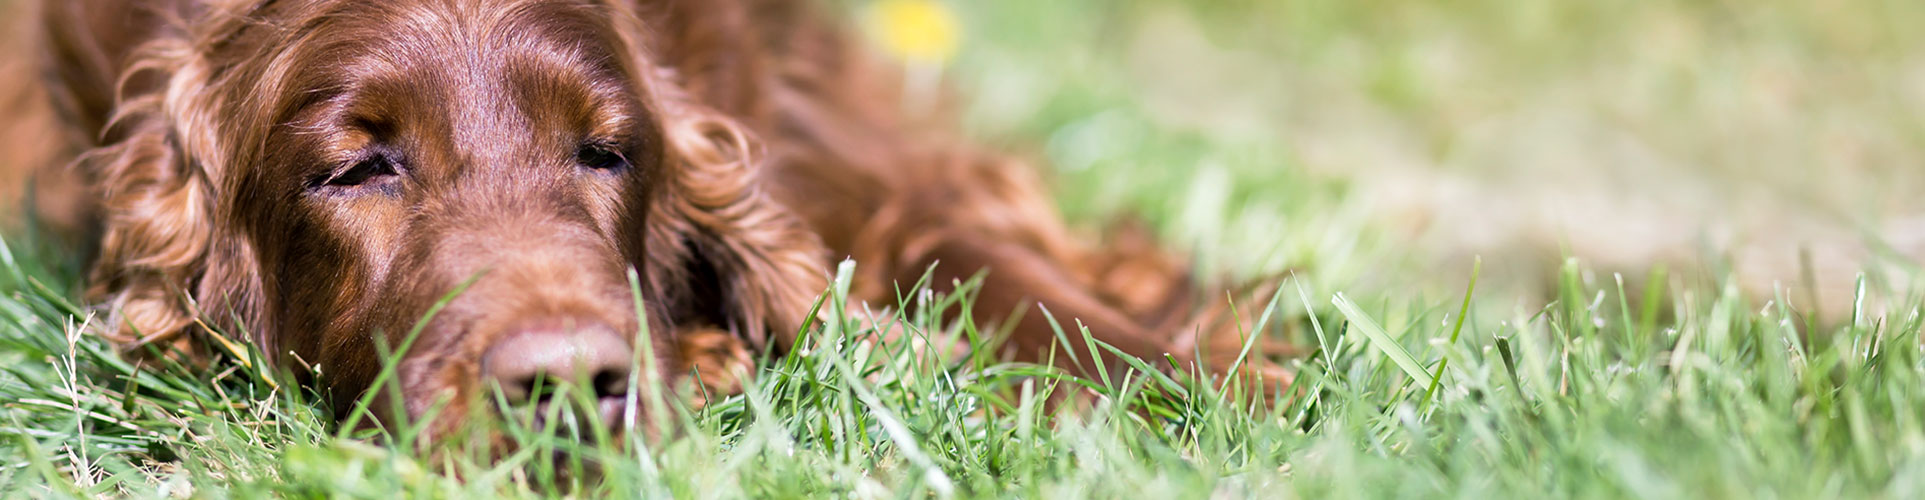 Pet End of Life Care in Lewisville: Old Dog Laying in the Grass